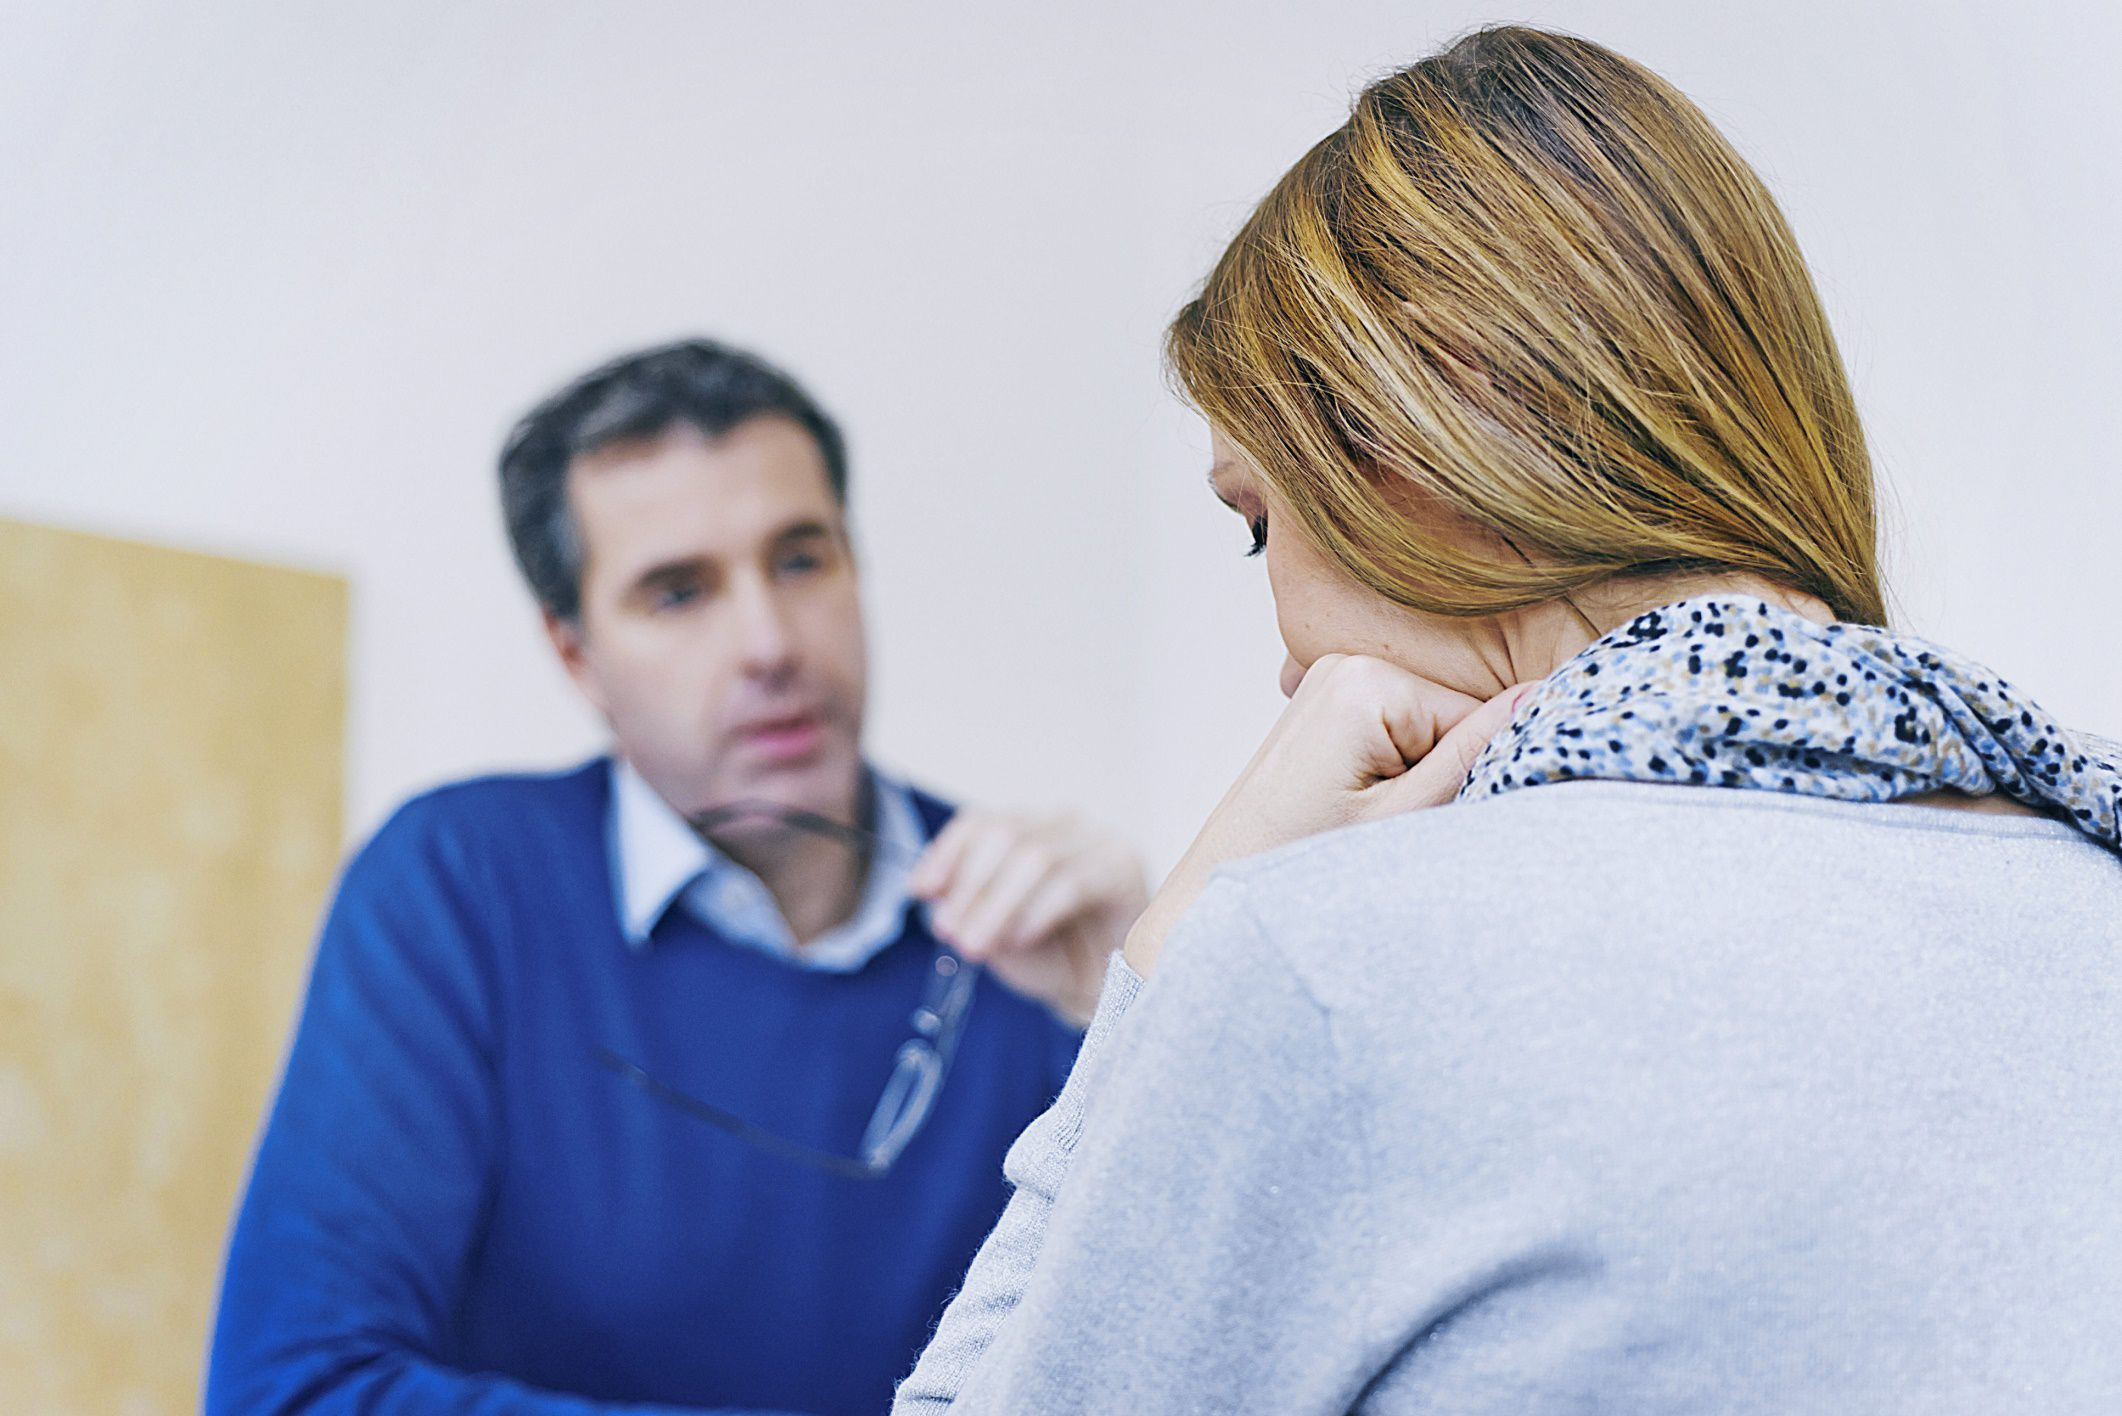 Interpersonal Therapy For Depression